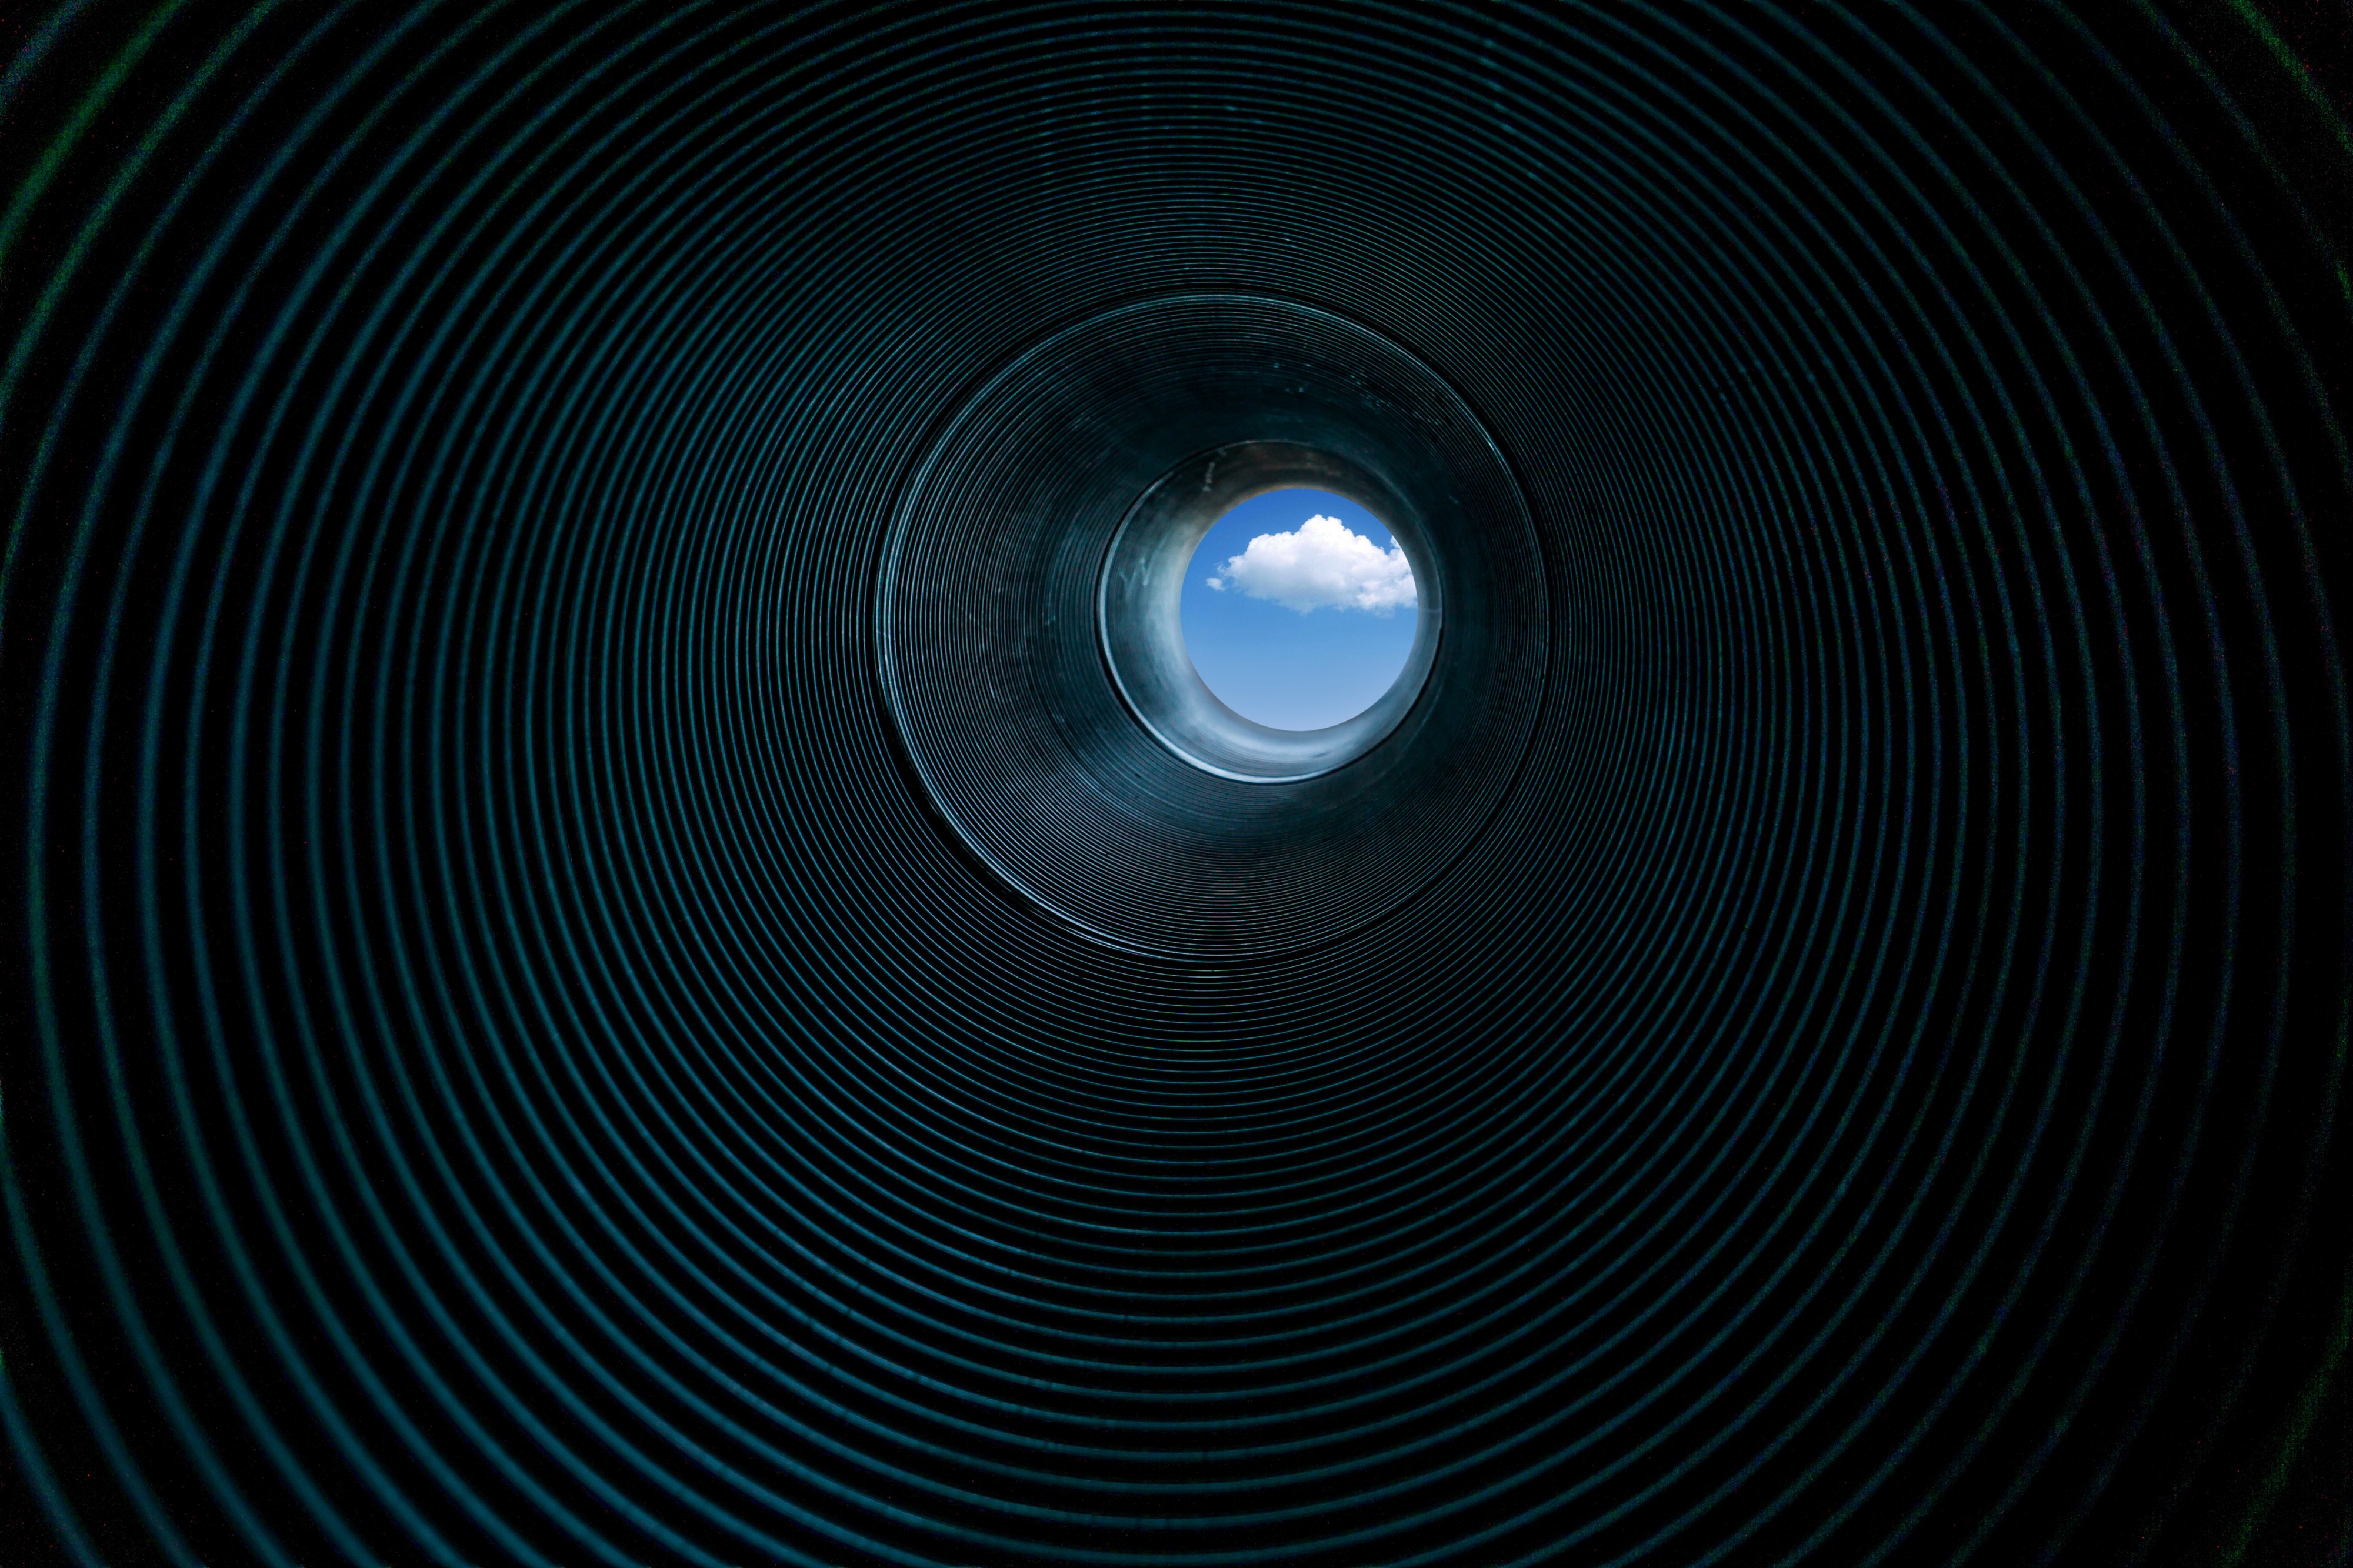 A spiral tube showing light at the end of the tunnel